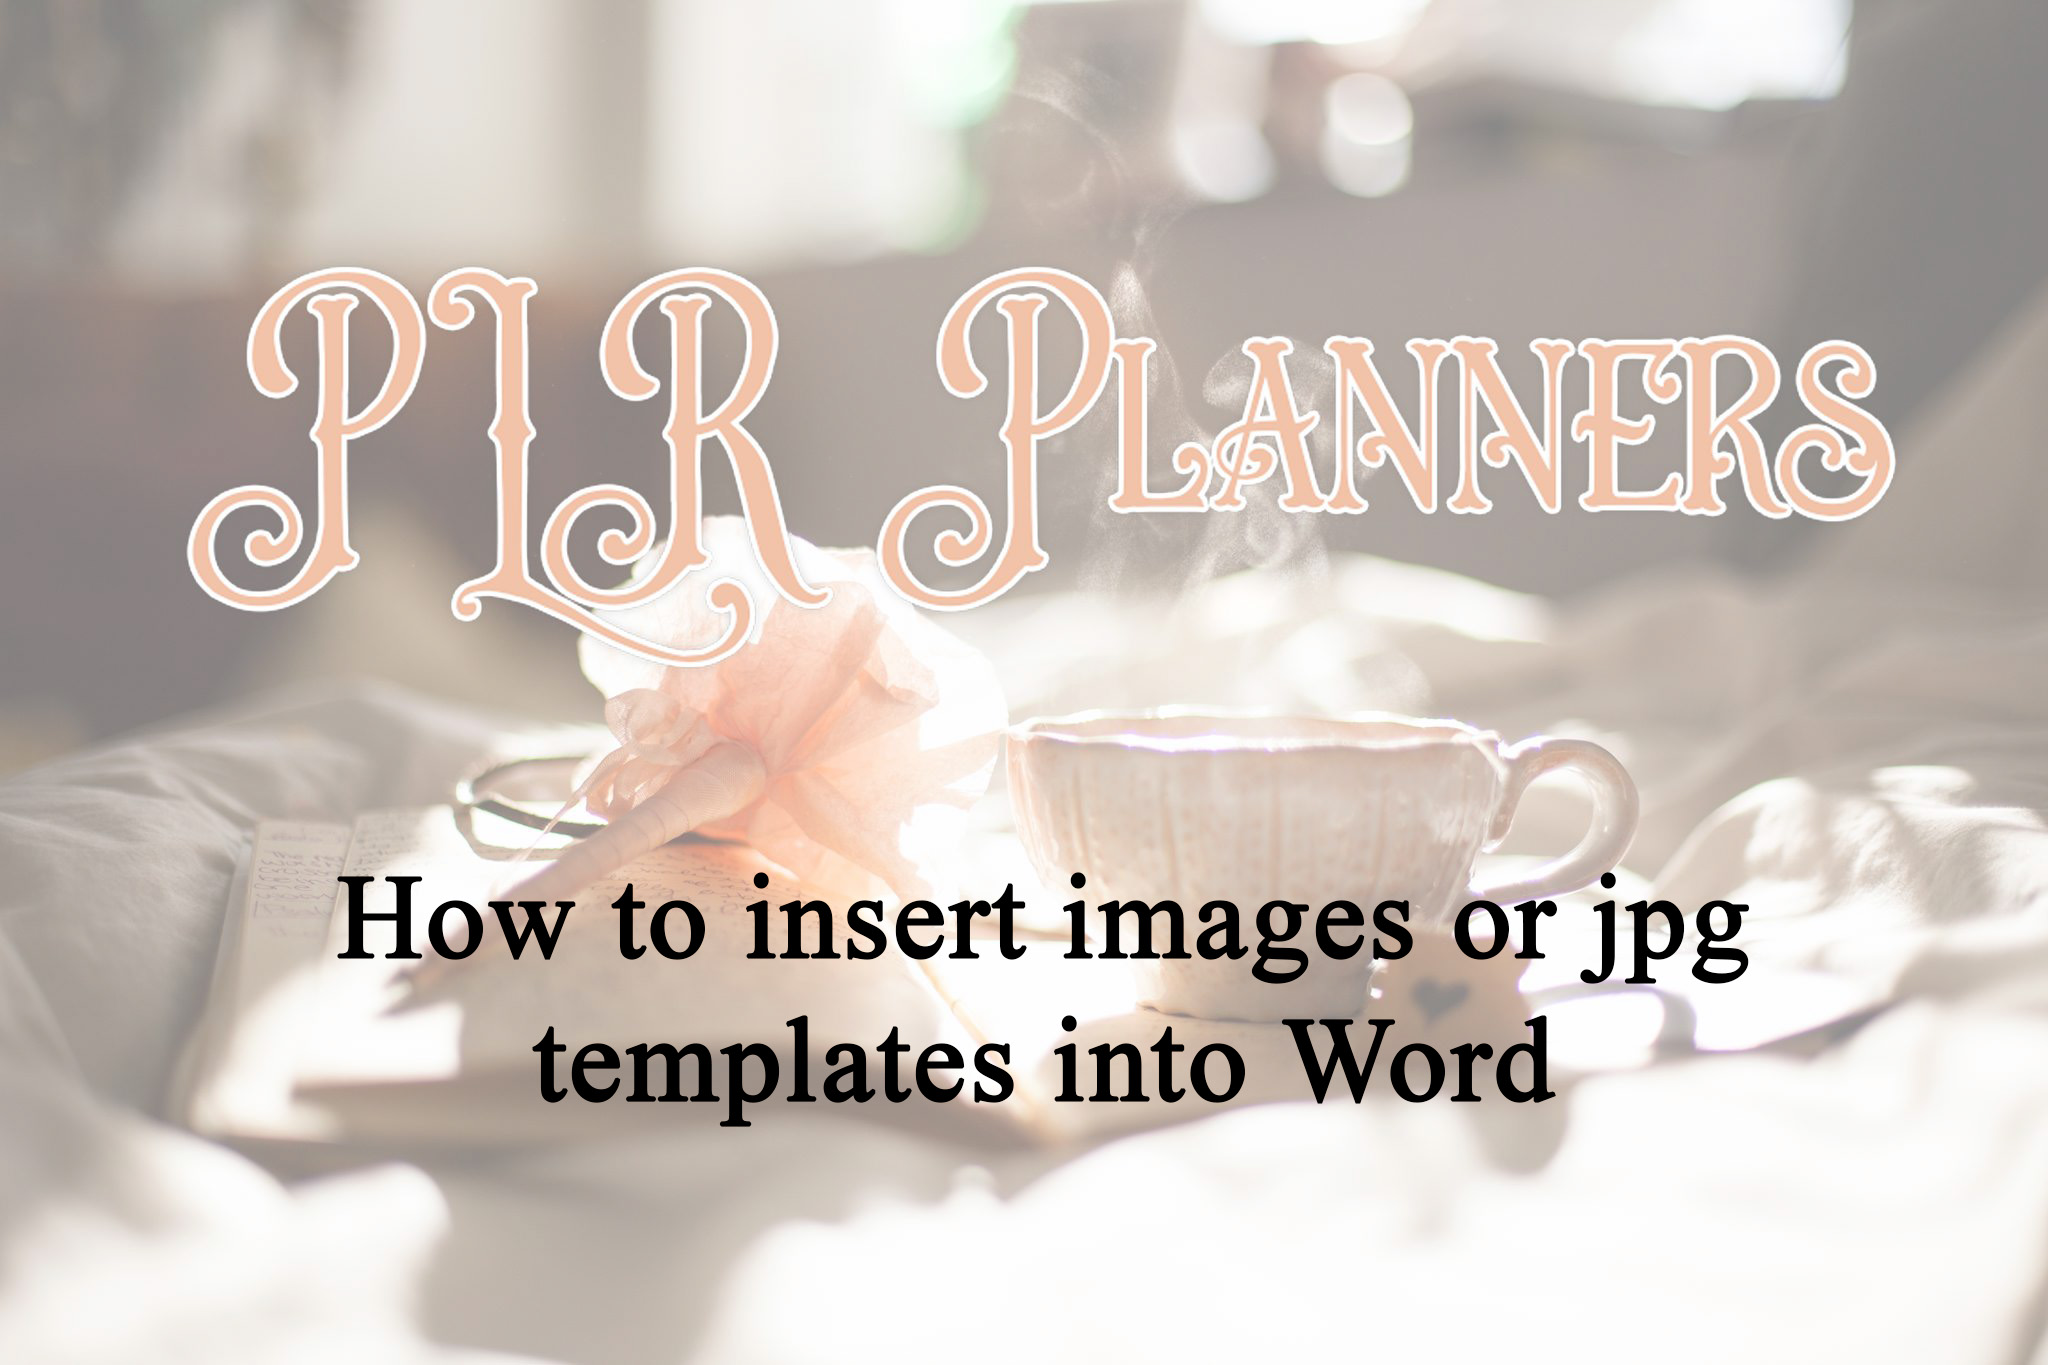 How to insert a jpg template or image into Word